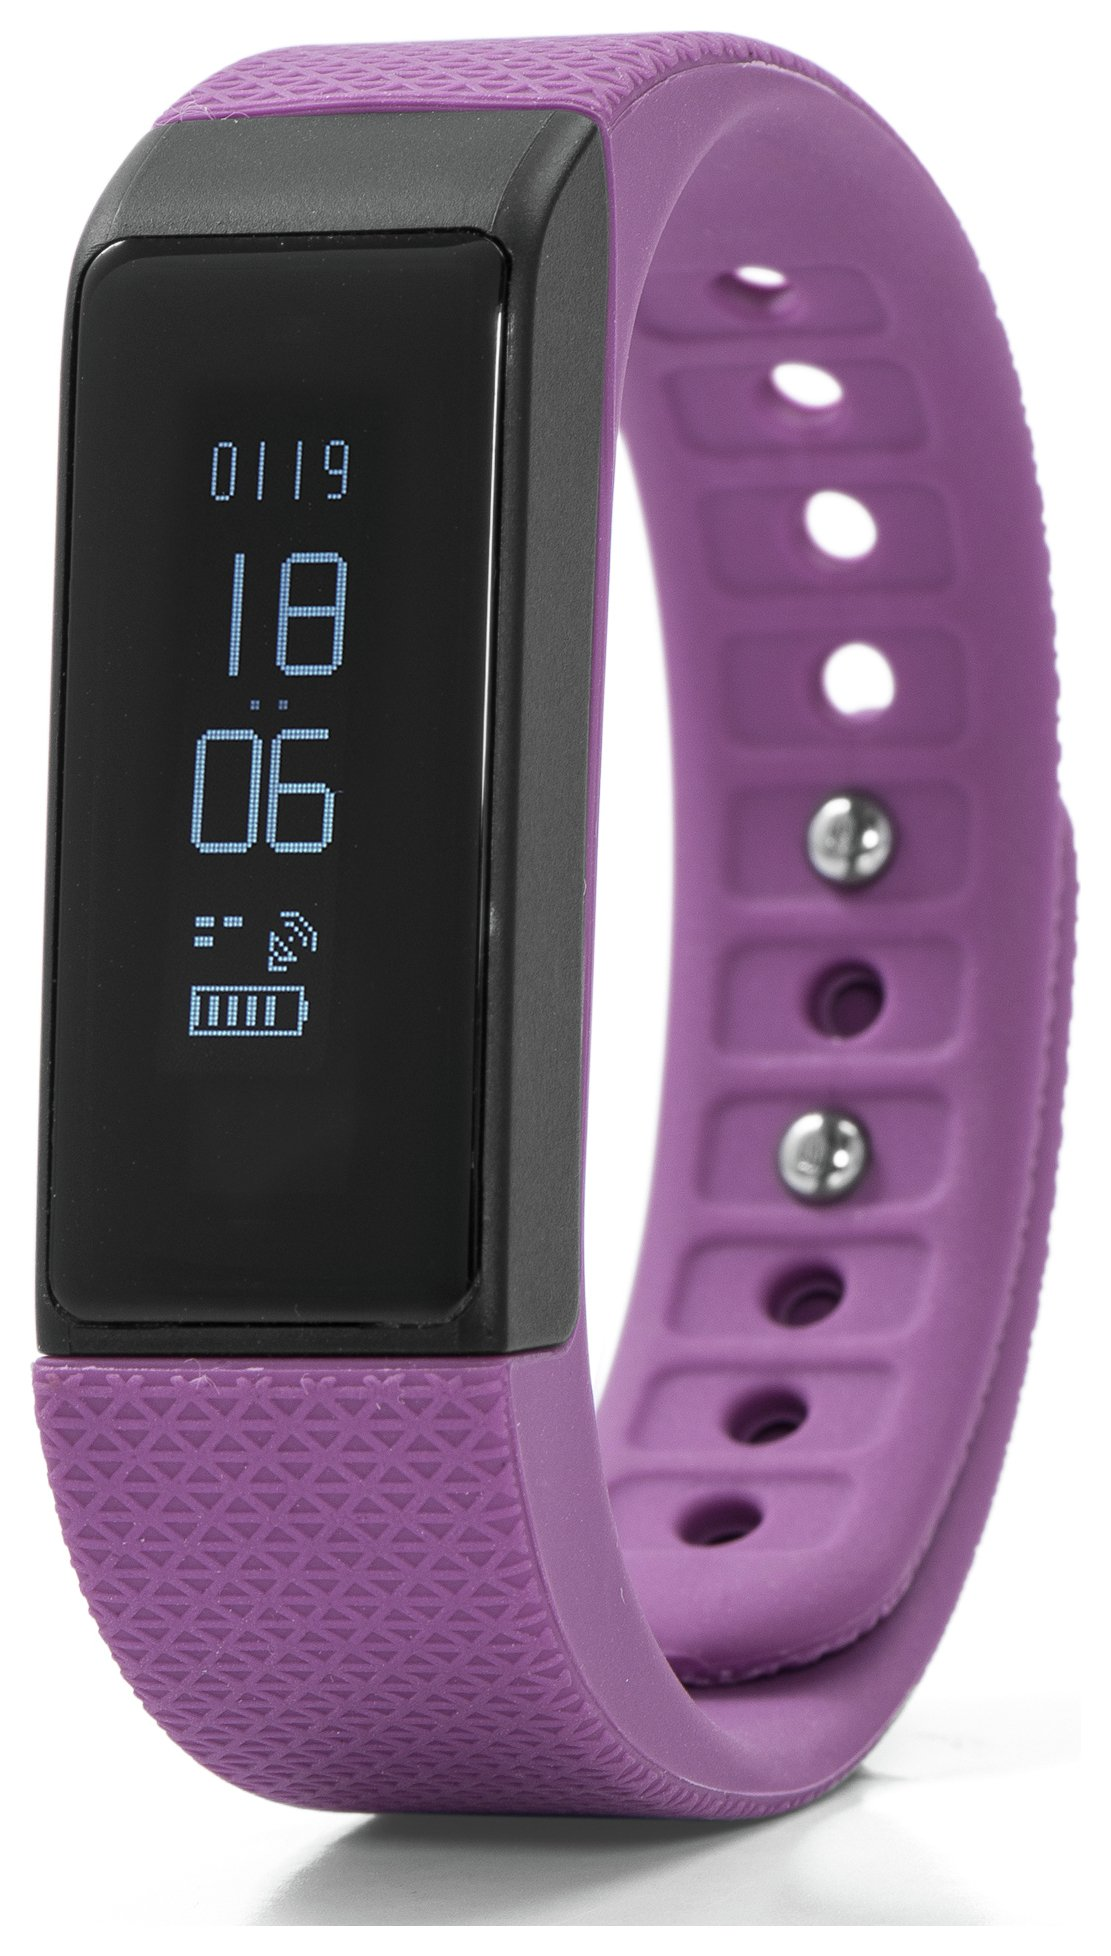 Nuband I Touch Fitness Tracker - Plum